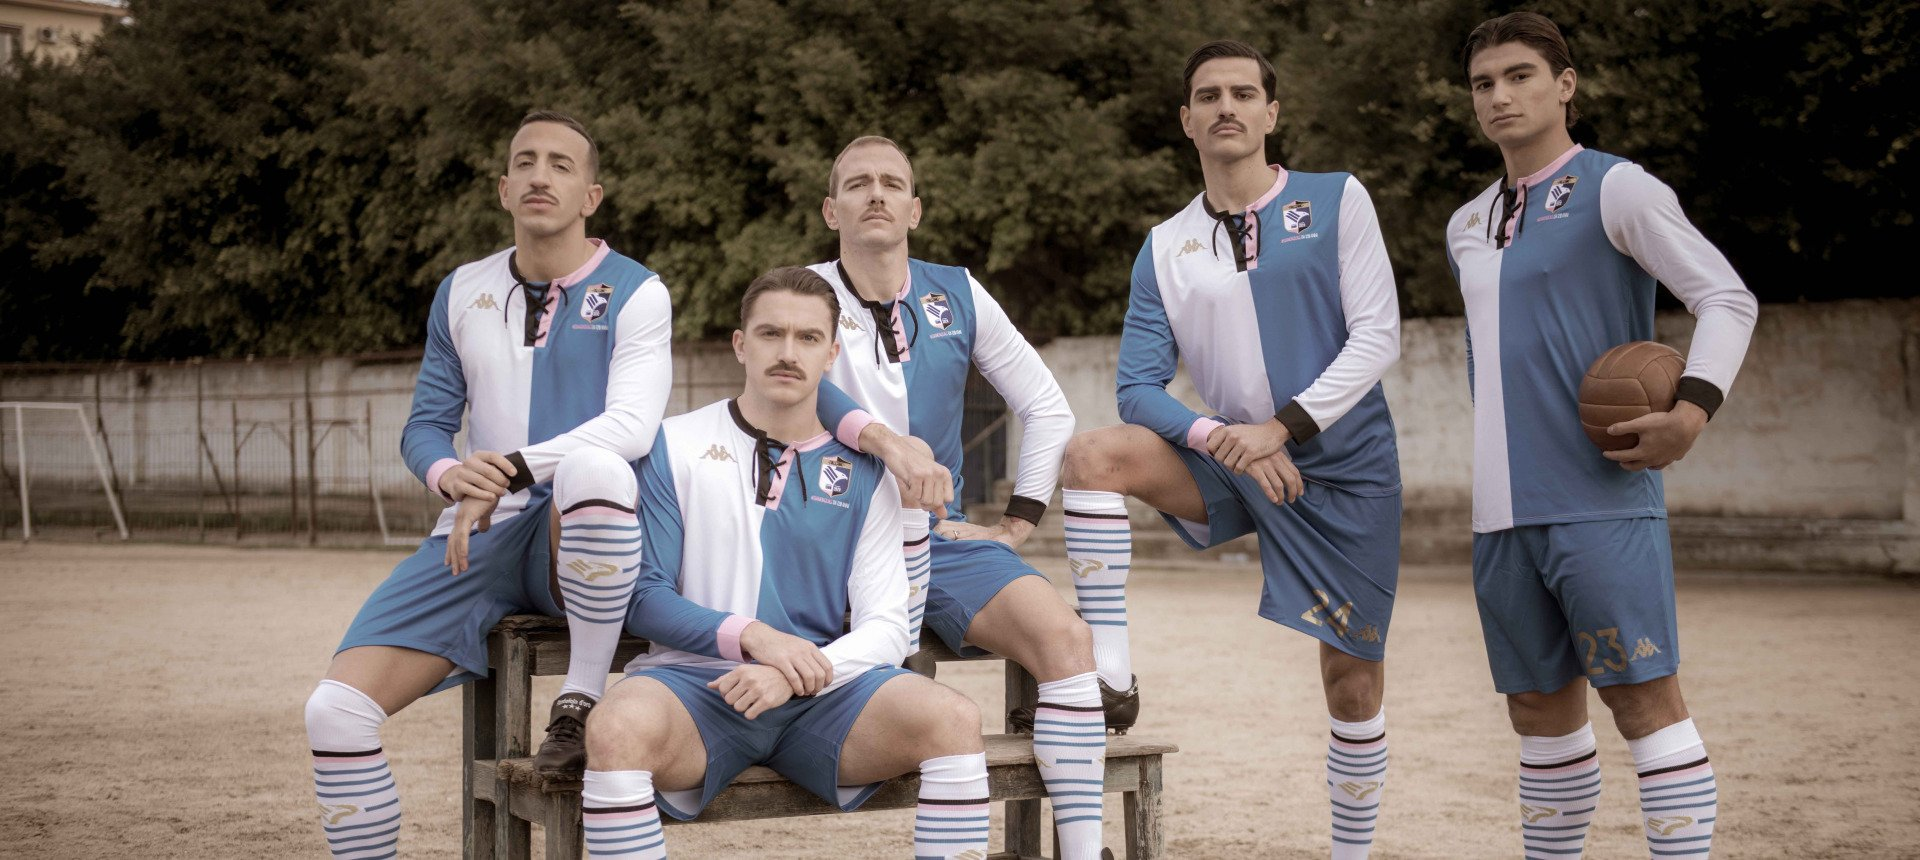 LIKE THE PIONEERS OF THE BEGINNING OF THE '900: PALERMO PLAYERS AS RETRO MODELS FOR THE NEW 120TH ANNIVERSARY T-SHIRT